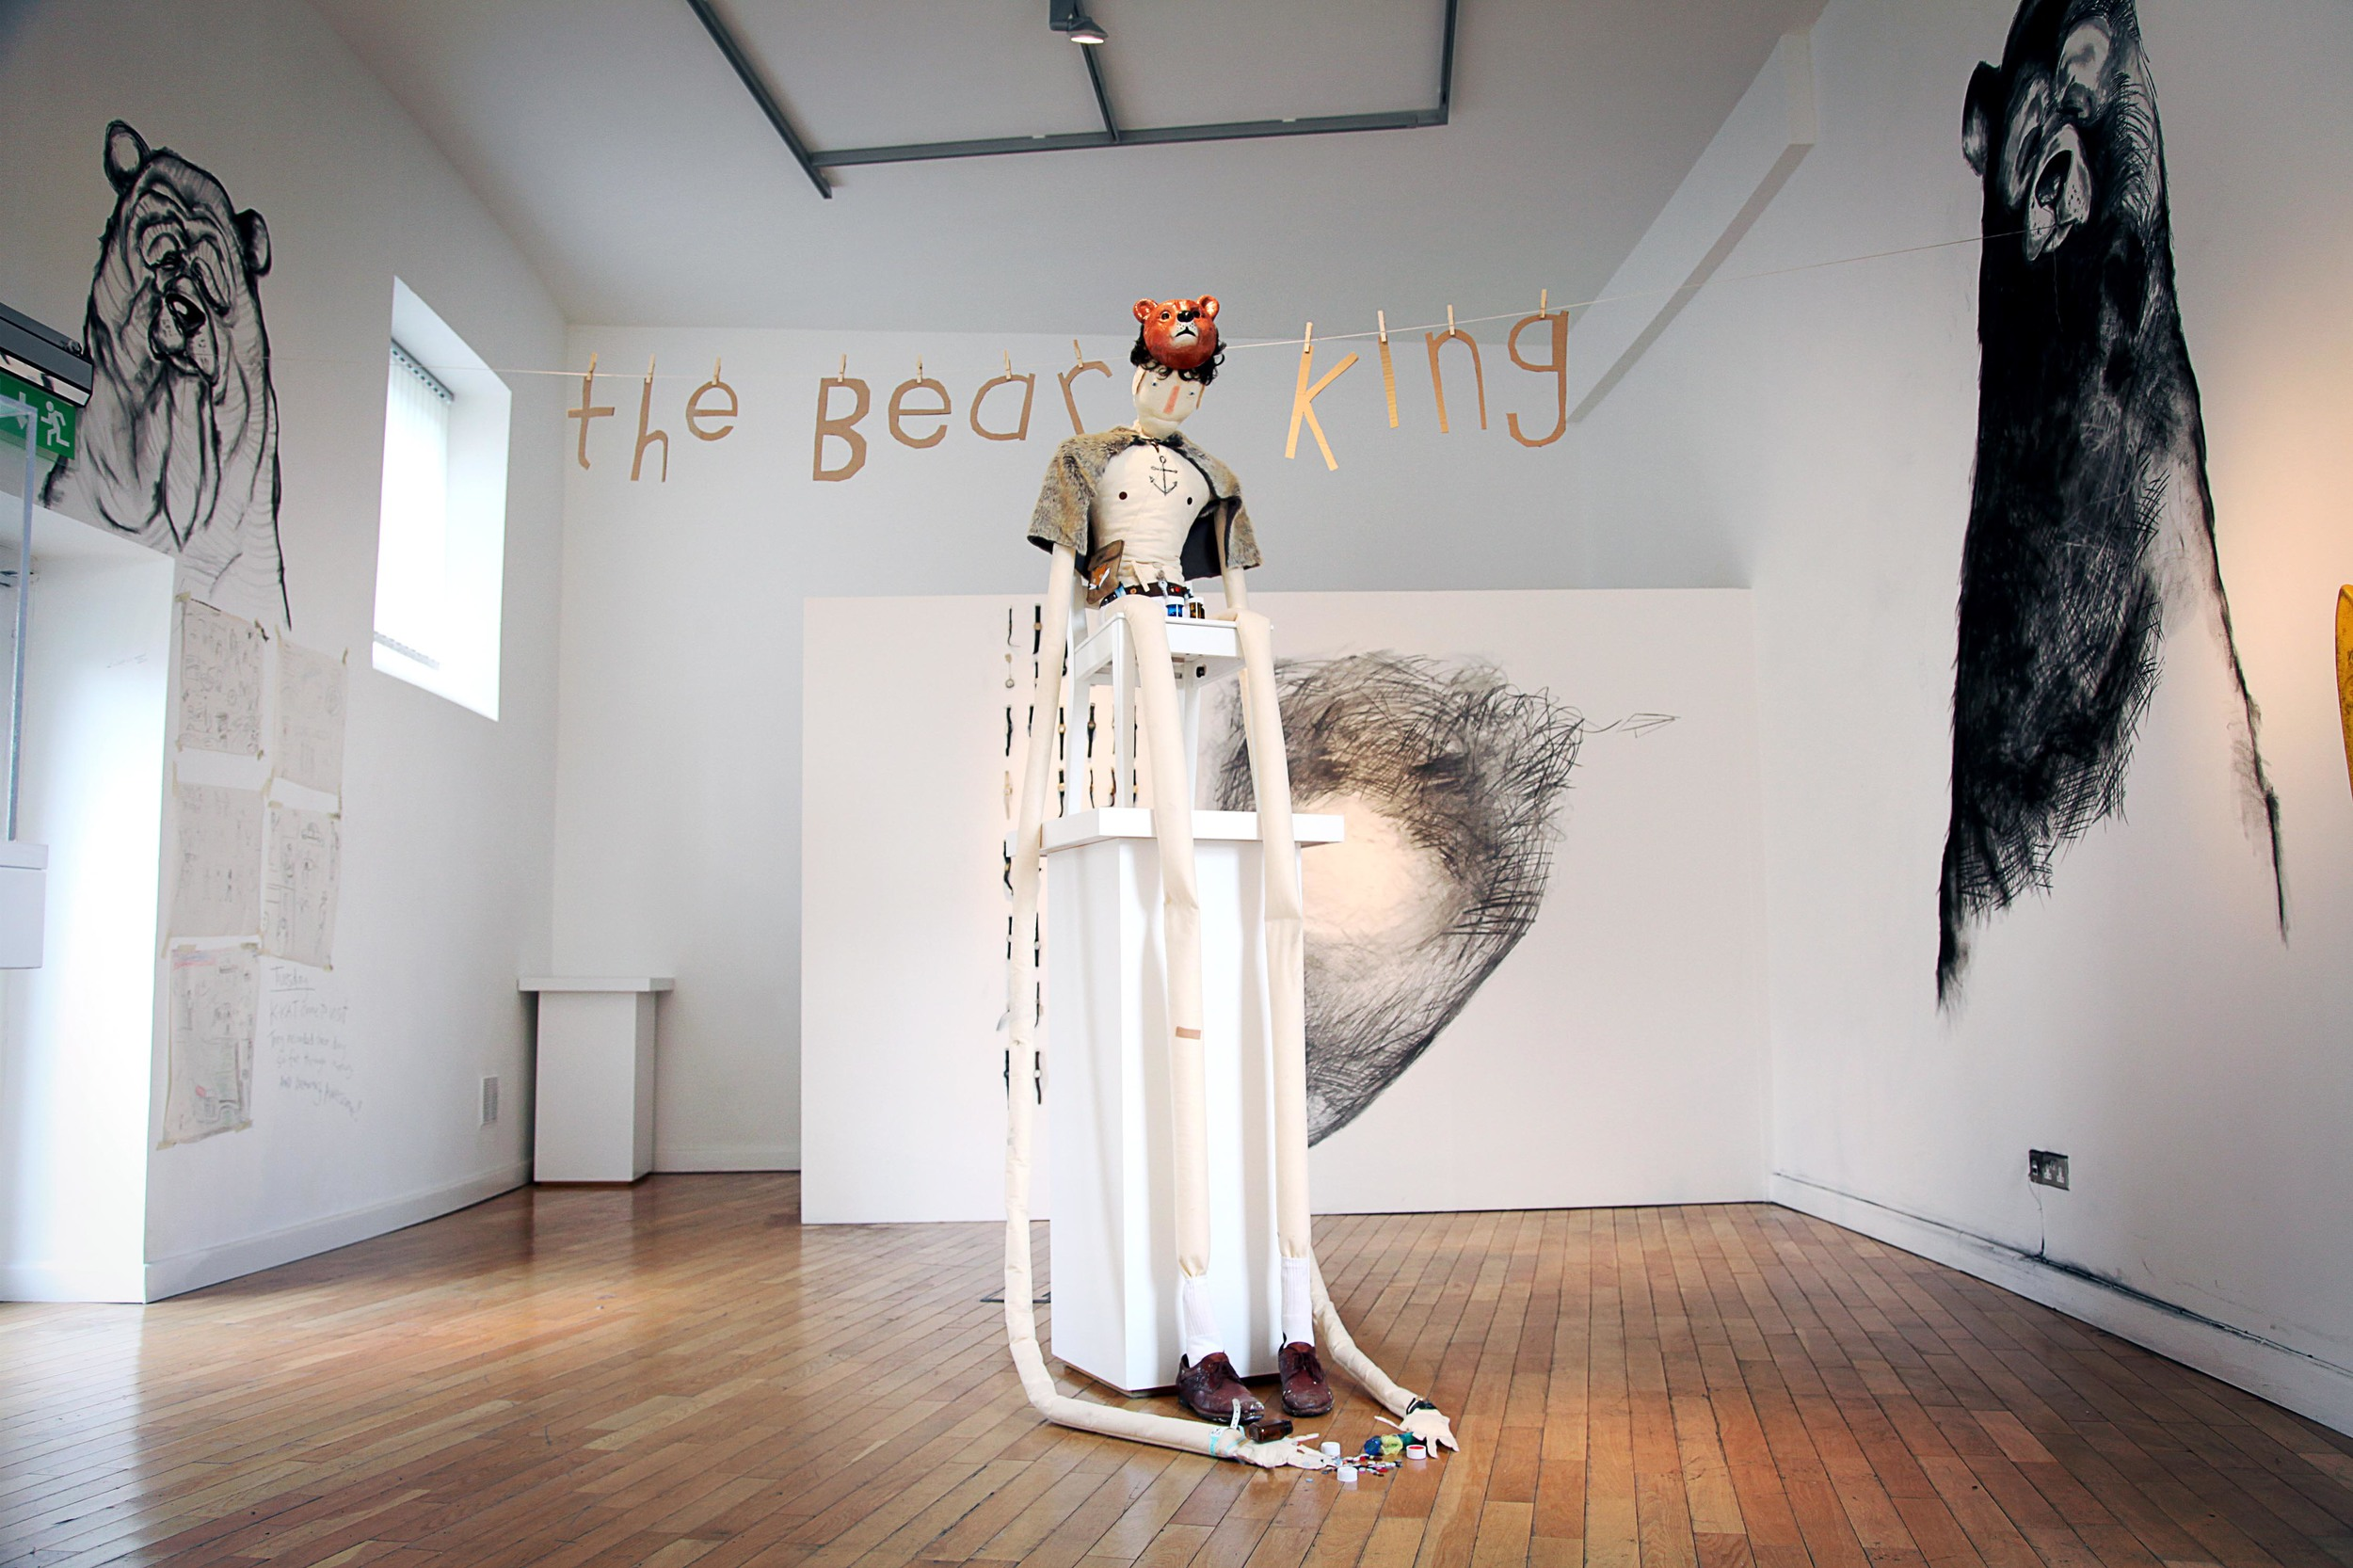 The Bear King by Mick Minogue